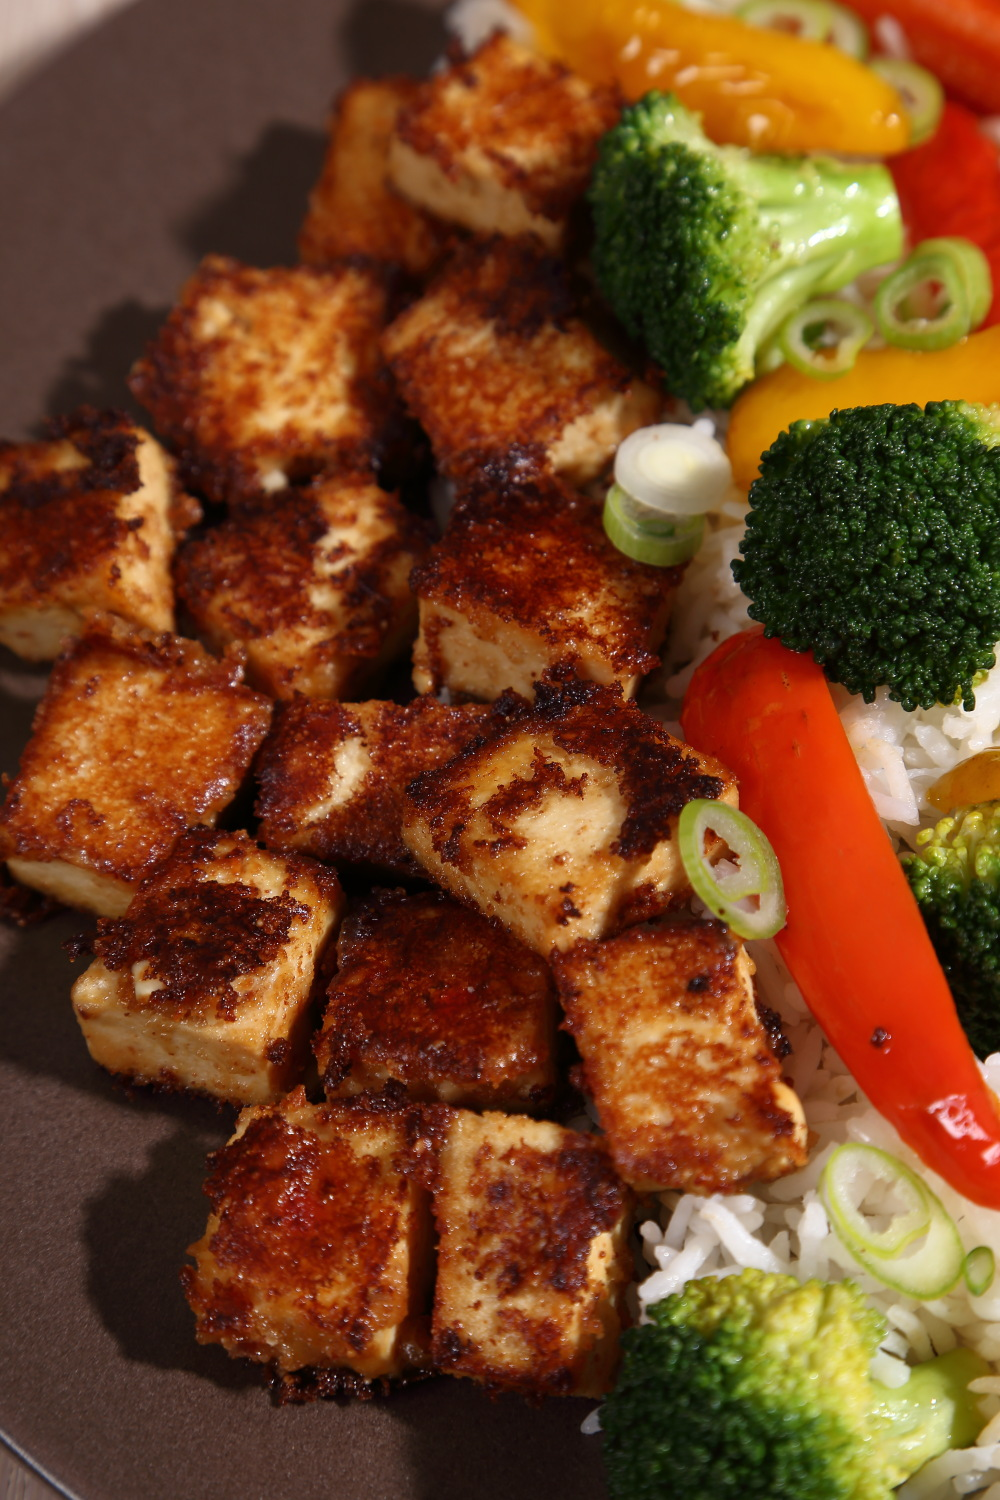 Peanut Butter Tofu is packed full of flavour and so simple to make. it's an easy vegan dinner!